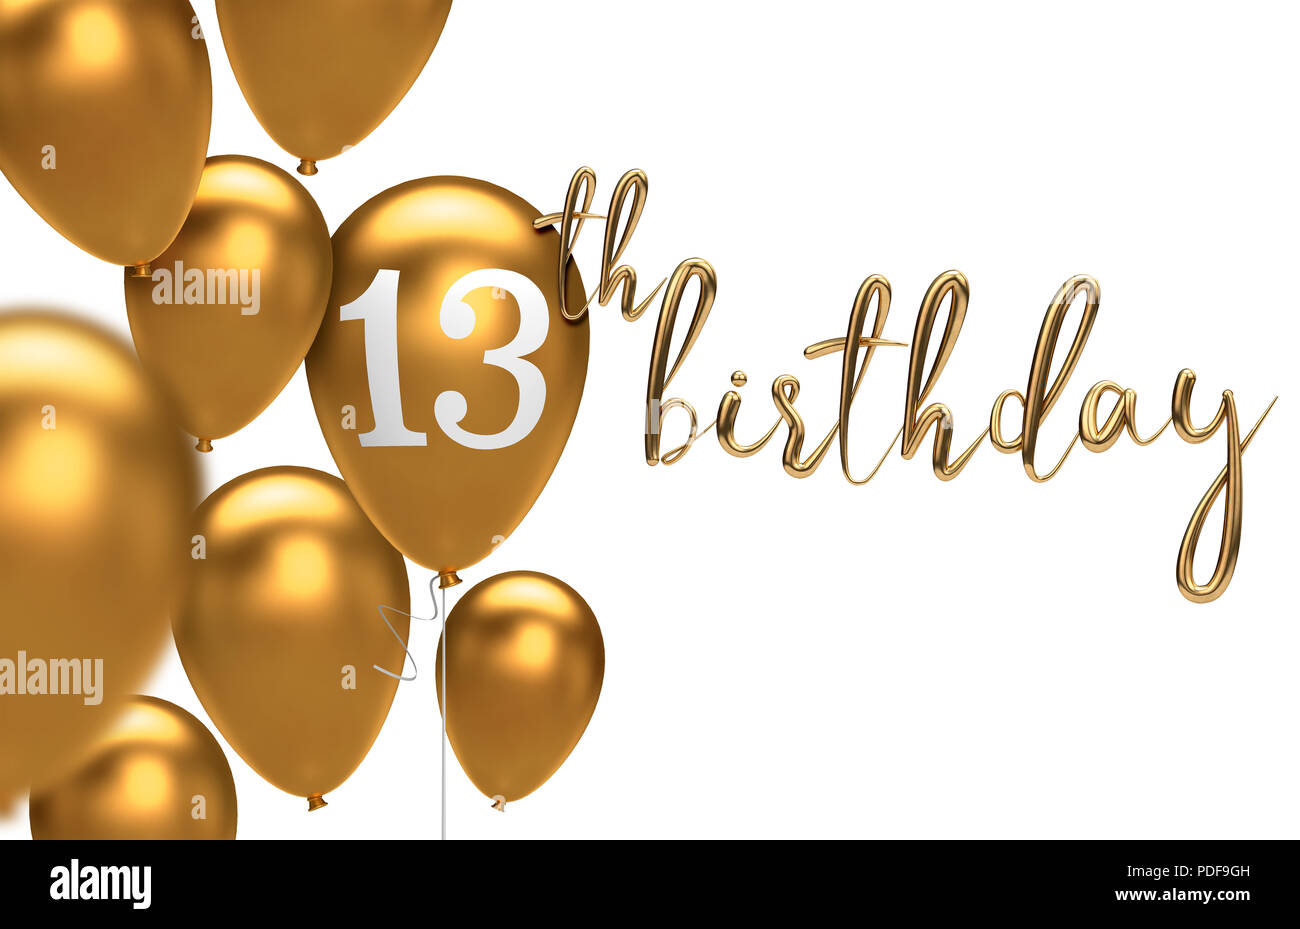 Gold Happy 13th Birthday Balloon Greeting Background 3D Rendering